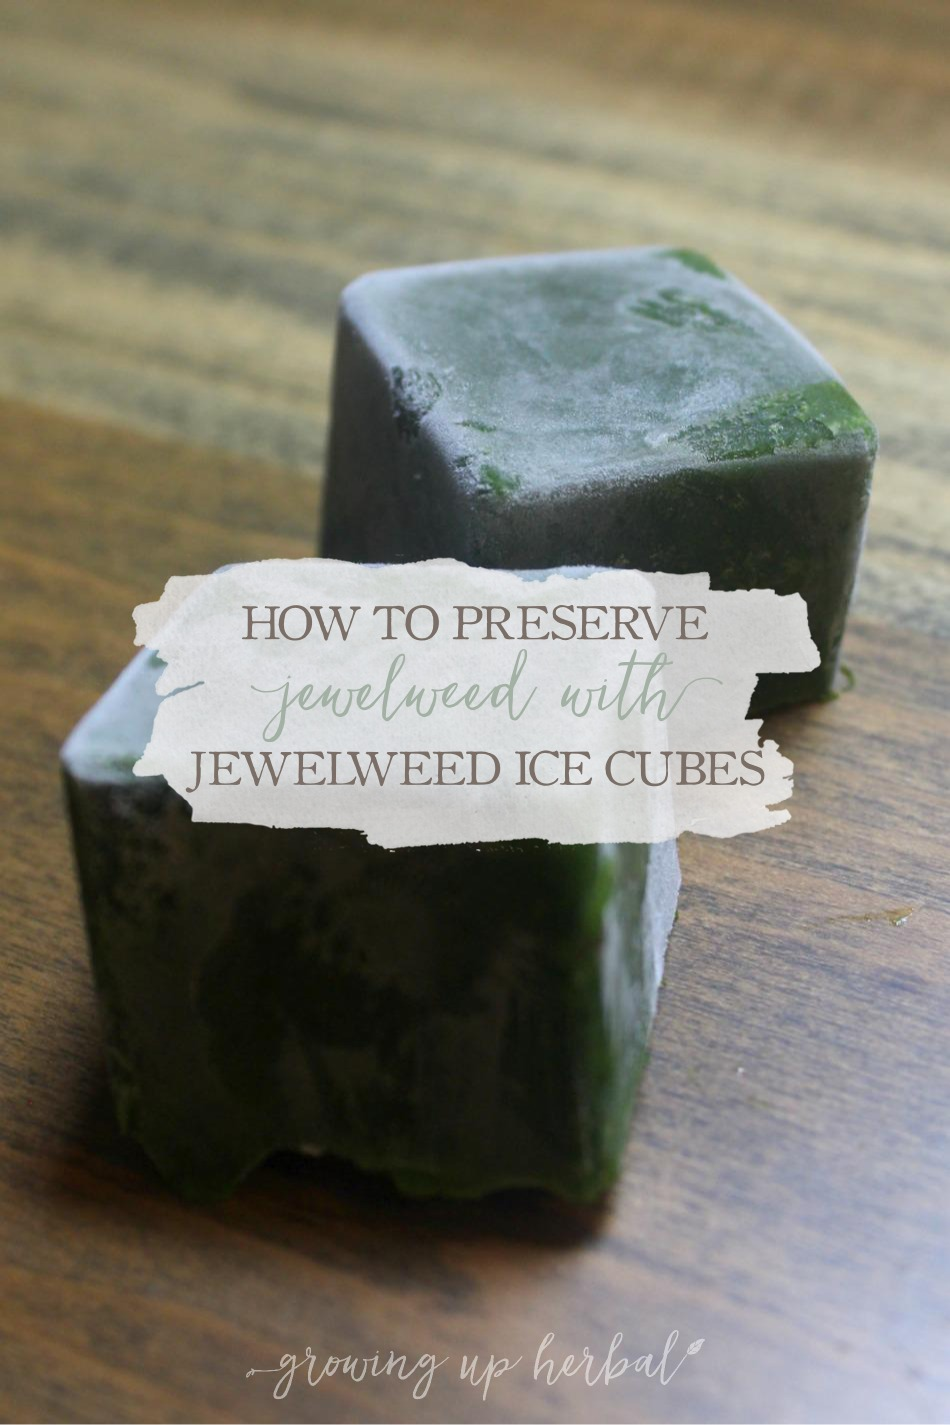 How To Preserve Jewelweed With Jewelweed Ice Cubes | Growing Up Herbal | Need some jewelweed during the winter to soothe an itchy rash but can't find any growing? Here's the solution to your problem!